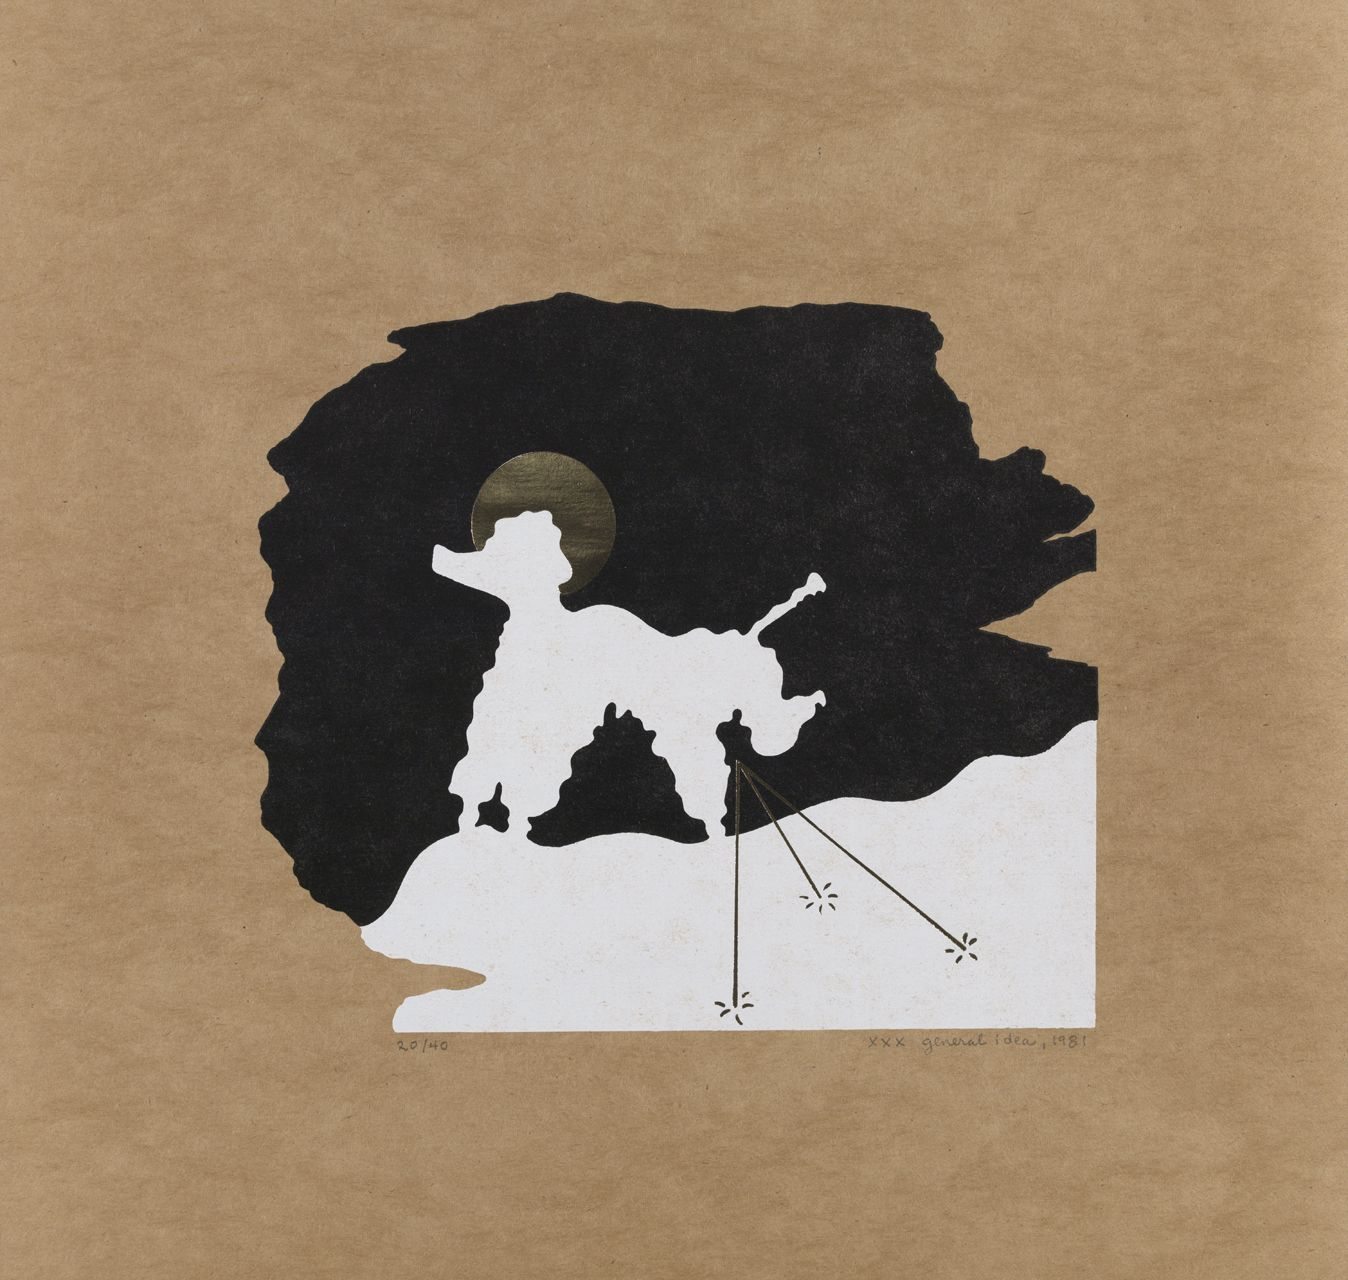 GENERAL IDEA A Poodle Creates a Portrait of General Idea as Three Pee-Holes in the Snow 1981